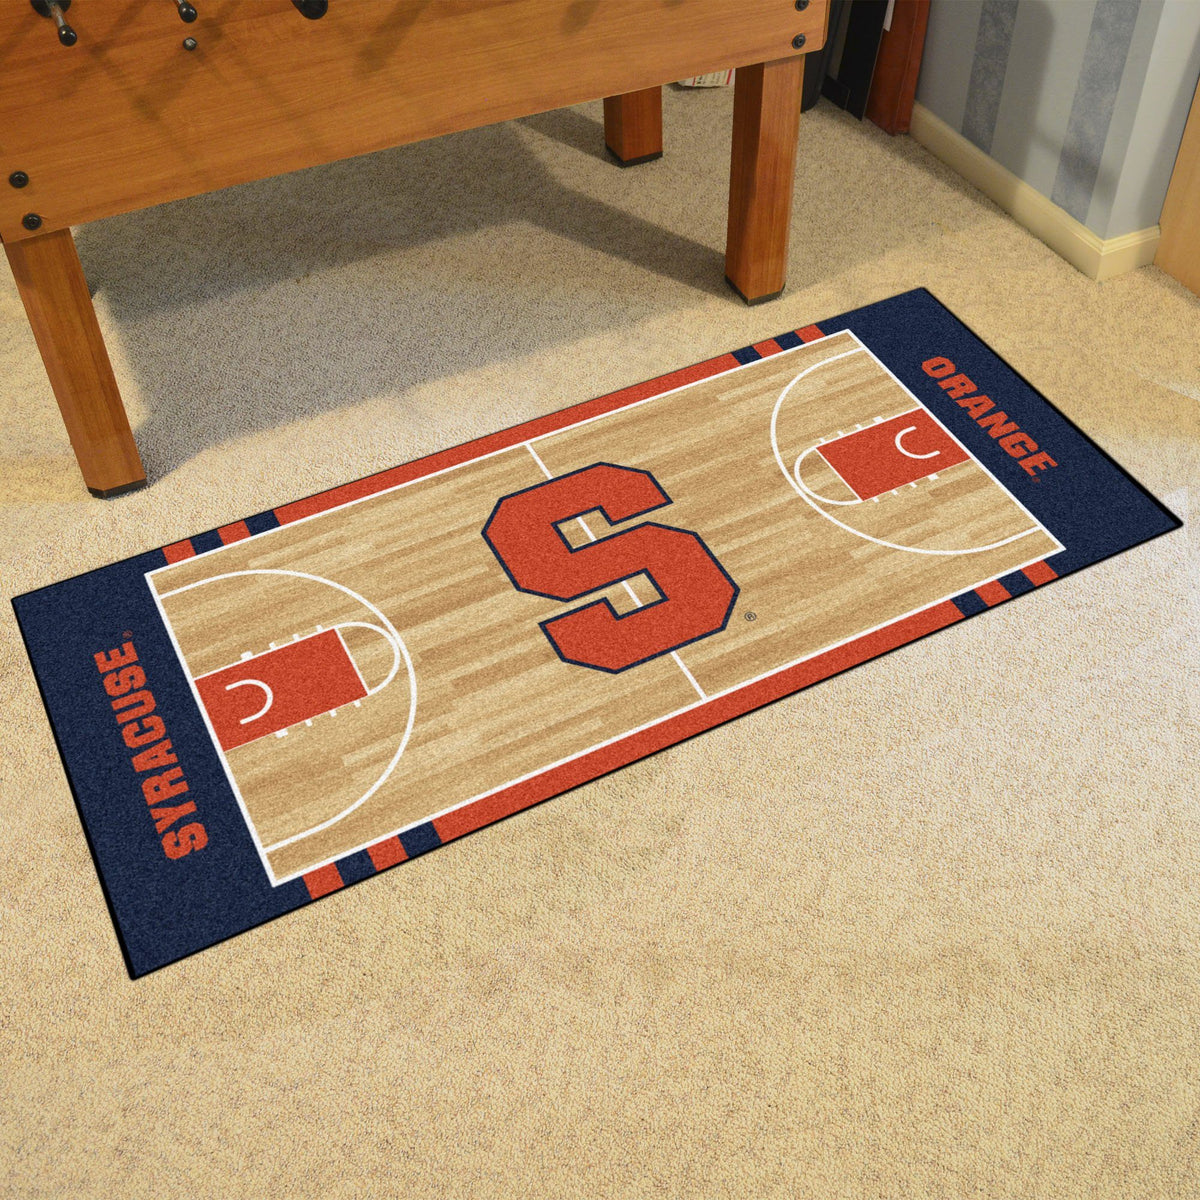 Collegiate - NCAA Basketball Runner Collegiate Mats, Rectangular Mats, NCAA Basketball Runner, Collegiate, Home Fan Mats Syracuse